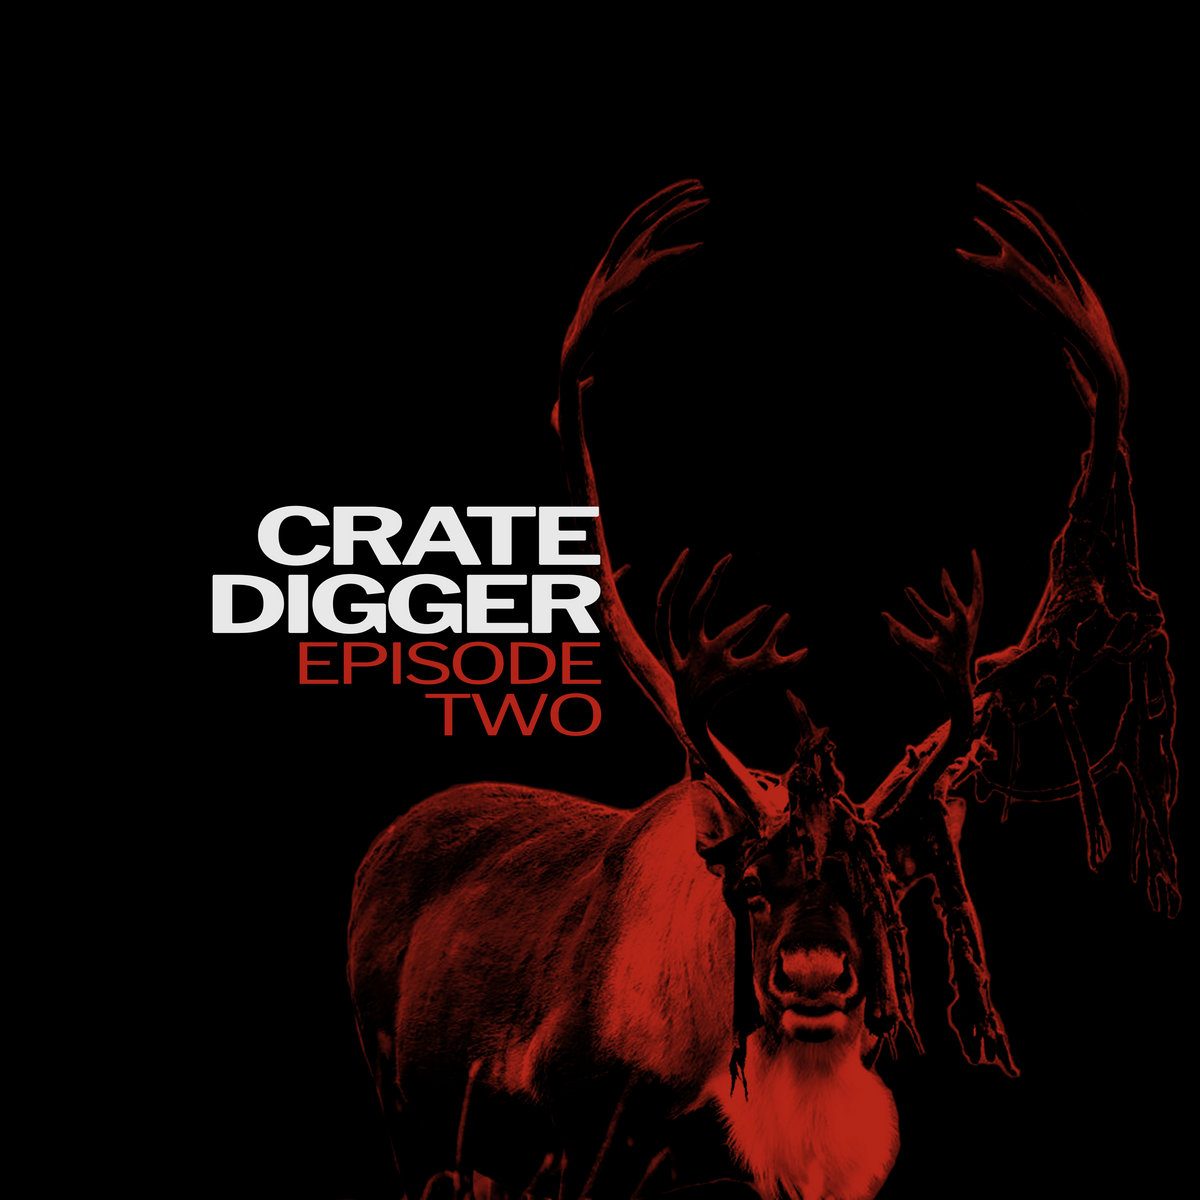 Crate Digger cover